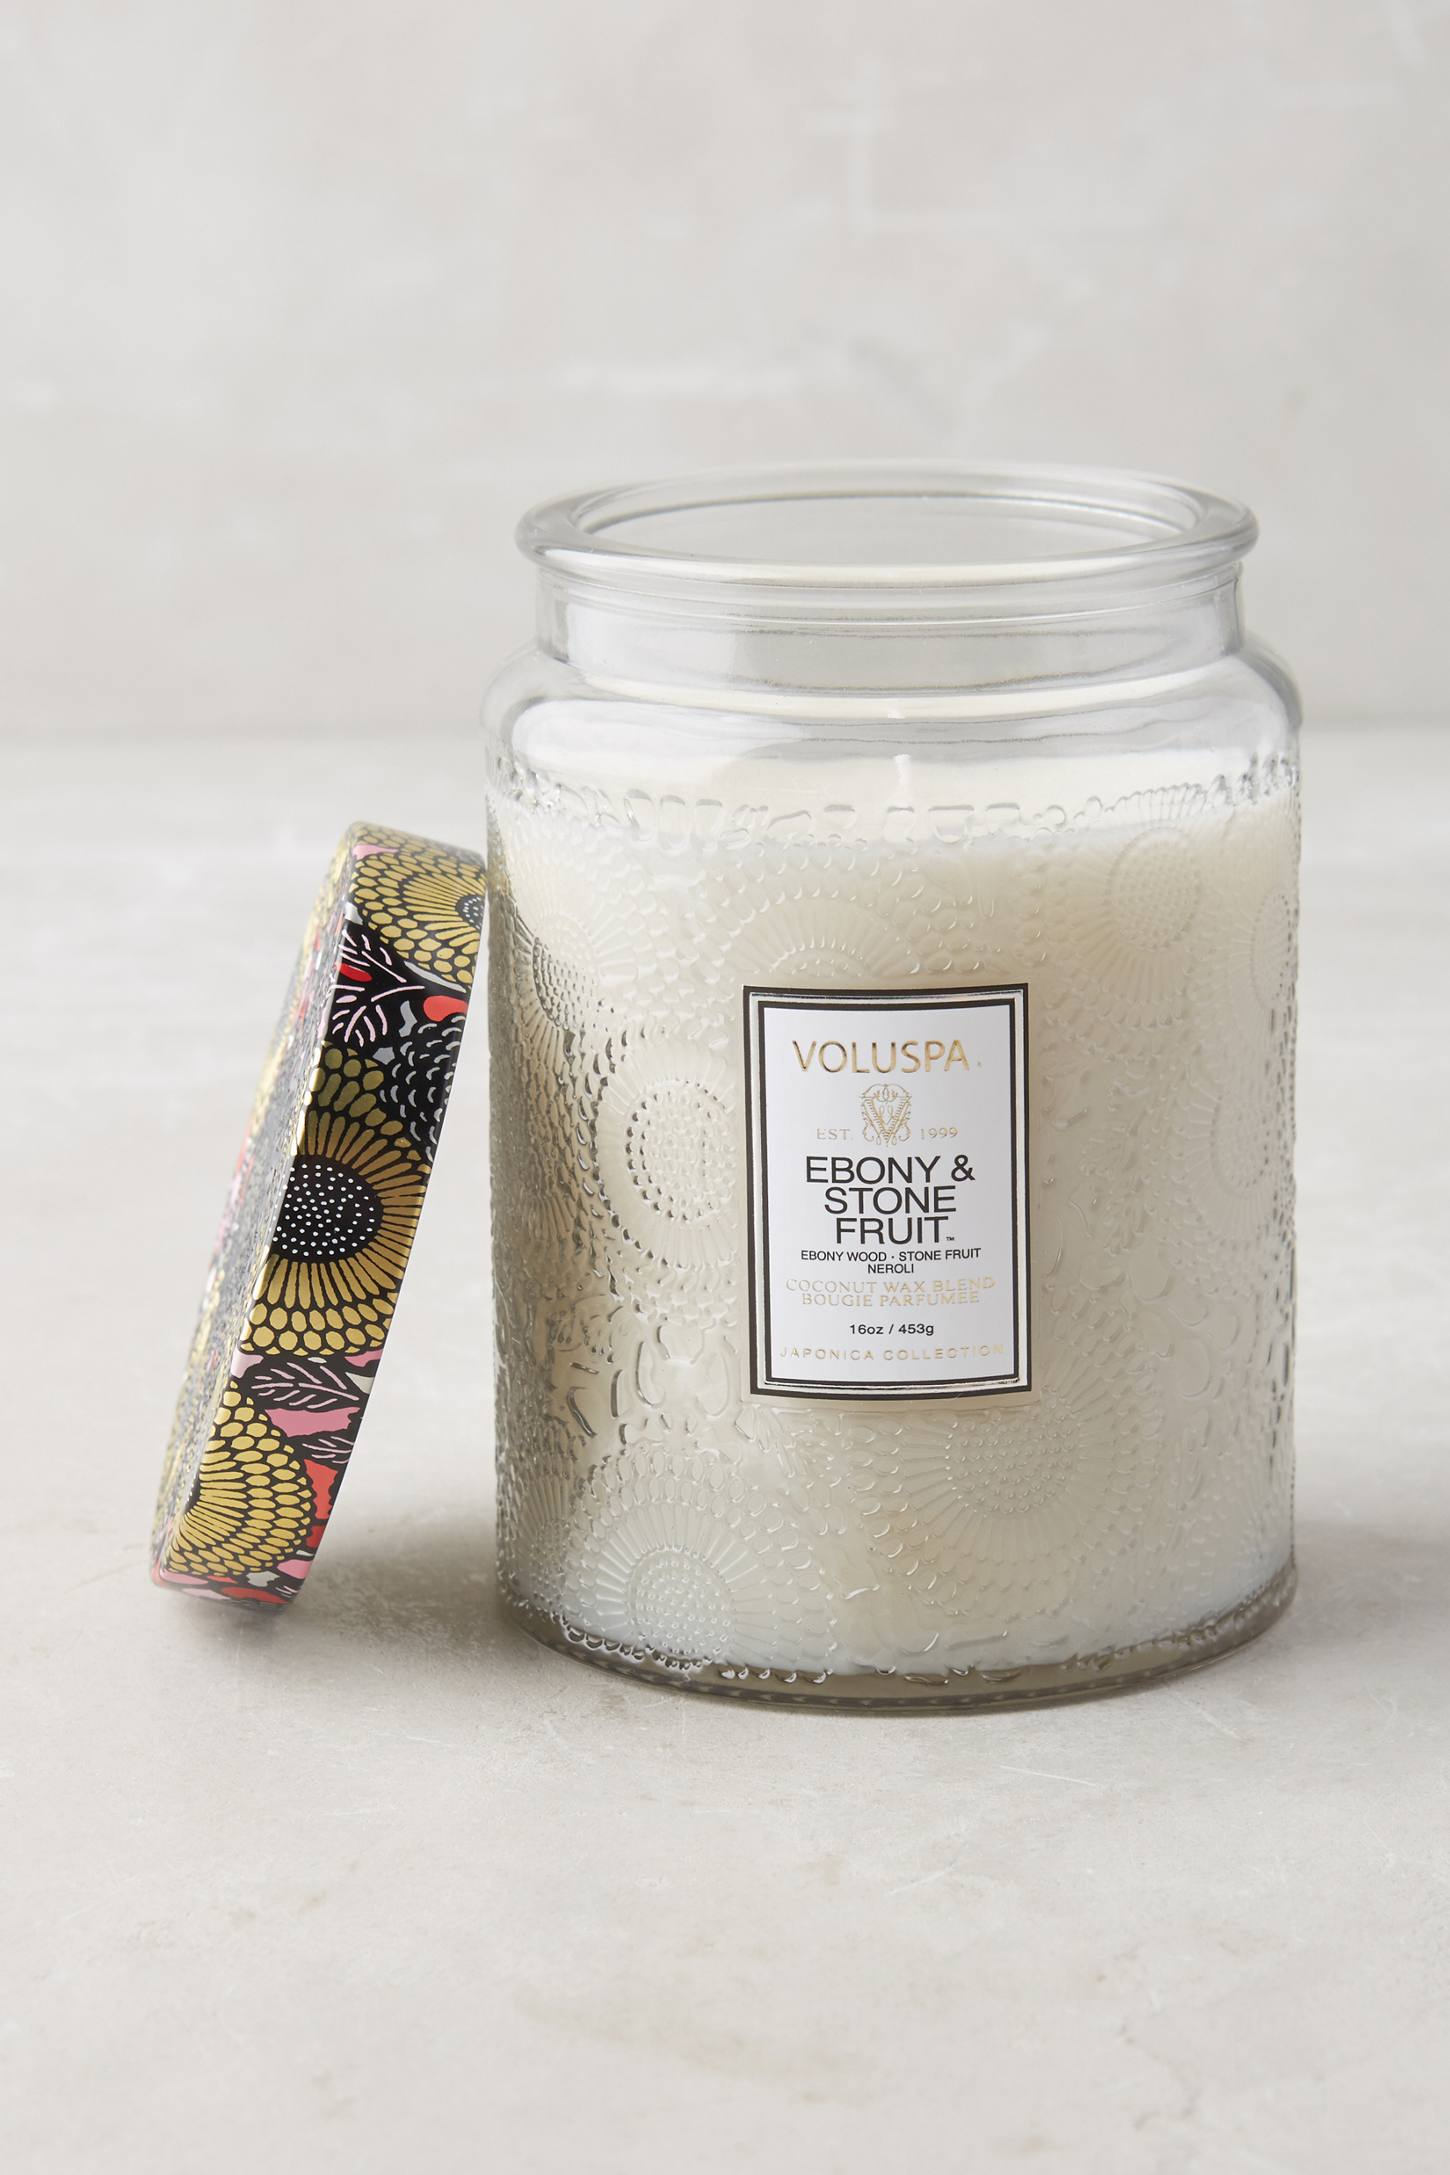 Slide View: 1: Limited Edition Voluspa Cut Glass Jar Candle